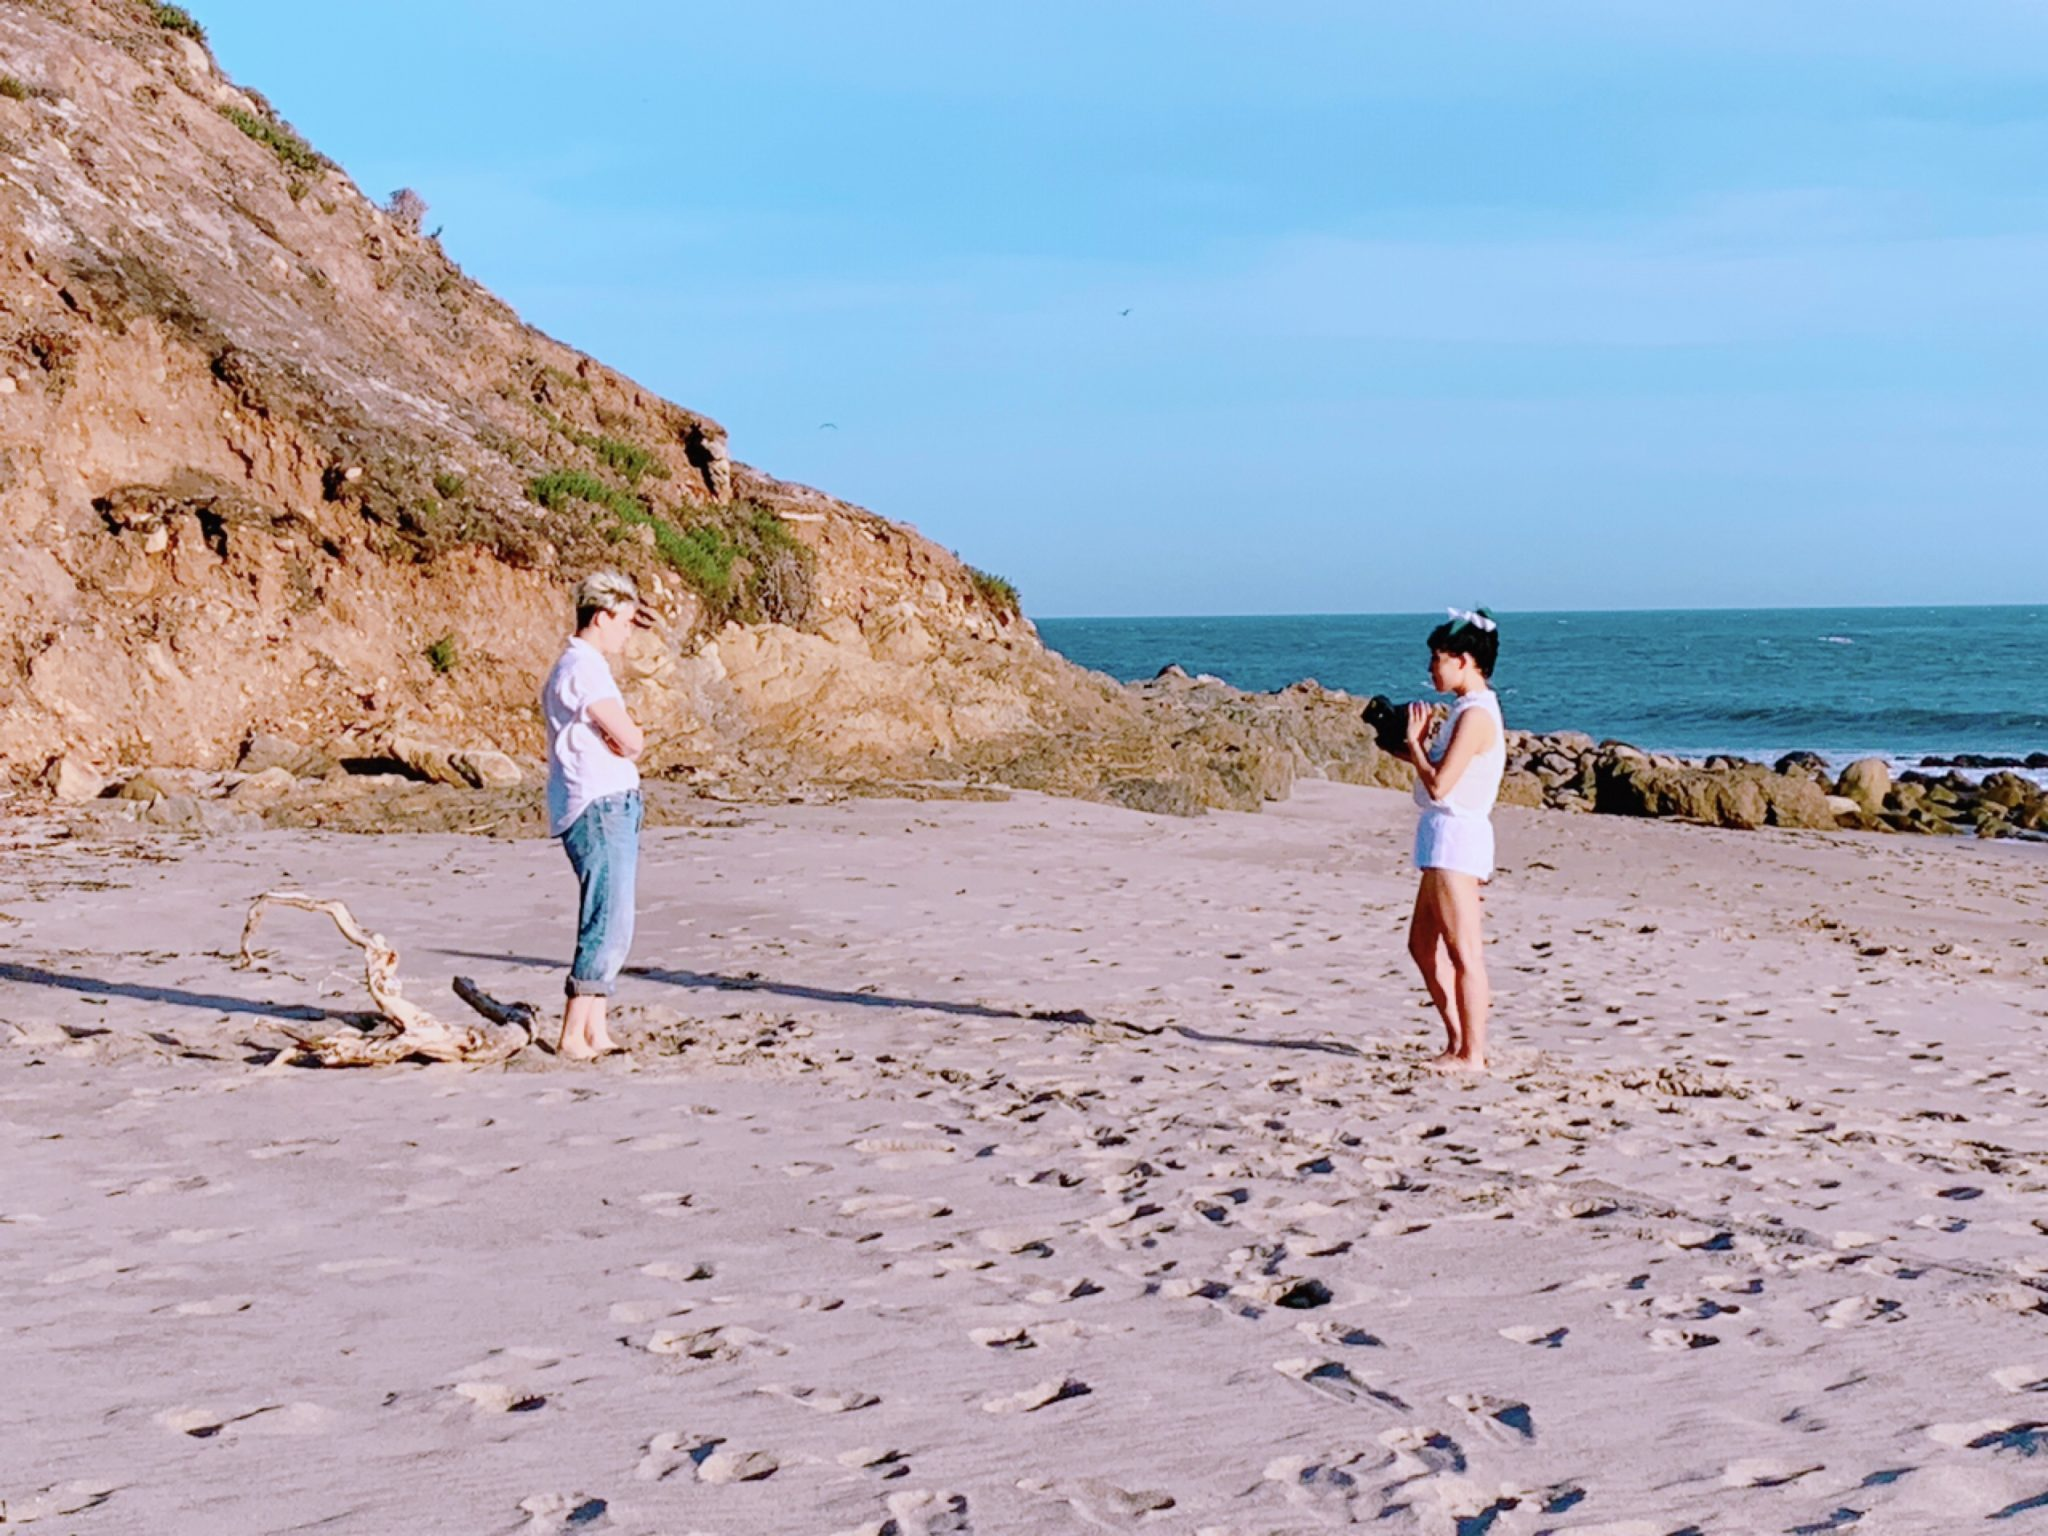 Colour photograph from, the Another Life music video. It features Polartropica on the right and their love interest on the left. They are stood apart on a well trodden beach. There is the sea to the right and a cliff to the left. The sky is clear and blue. Polartropica is wearing white shorts, top and bow in tied up hair. They are also carrying a camera which is pointing at the other person. The other person has blonde short hair and is wearing blue jeans and a white top, their arms are crossed in front of them.